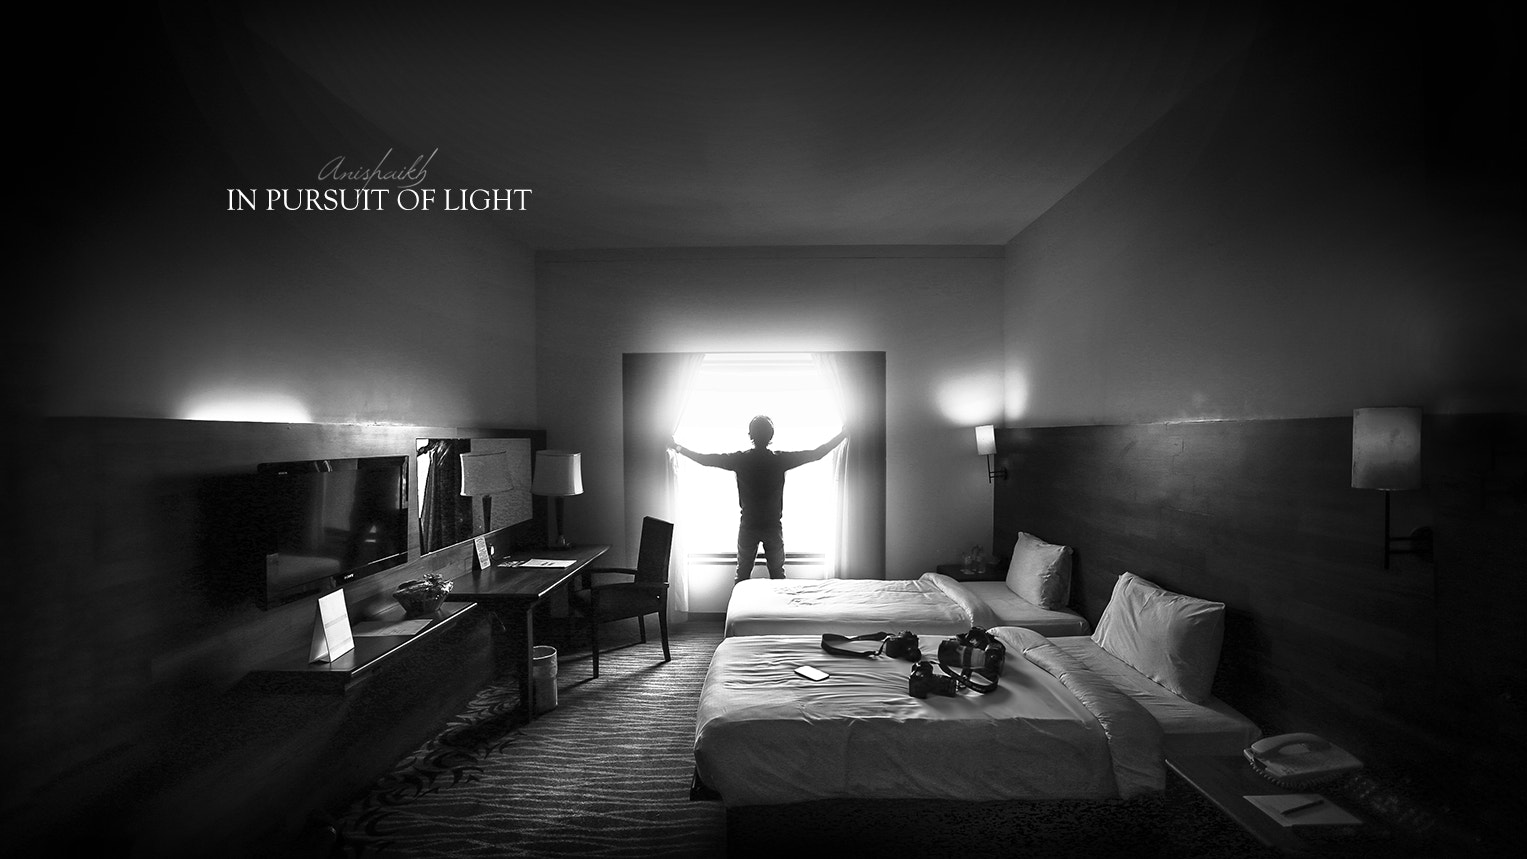 Photograph In Pursuit of Light by Anis Shaikh on 500px